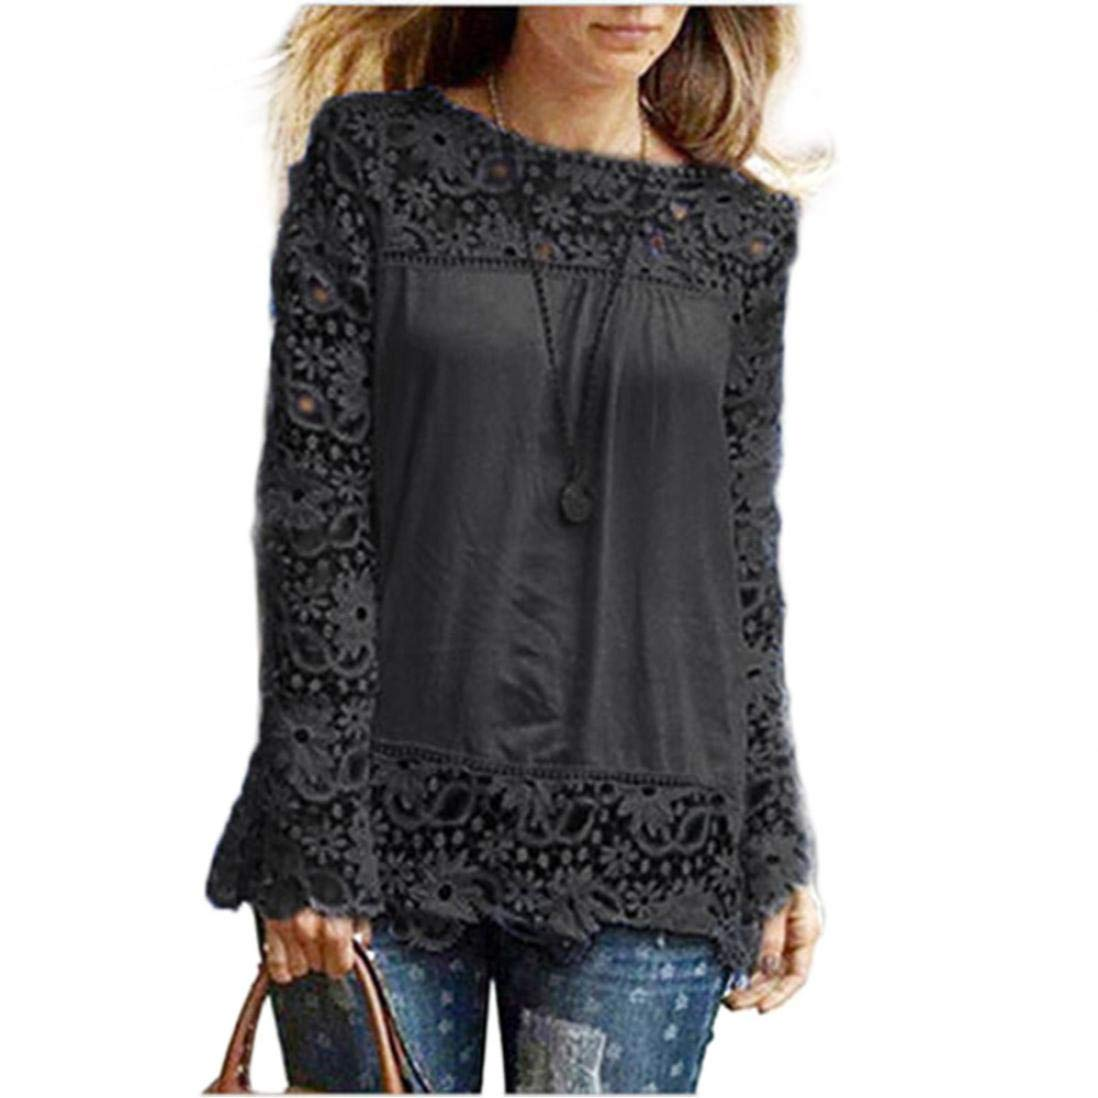 Womens Clothing Clearance,KIKOY Long Sleeve Shirt Casual LaceCotton Tops